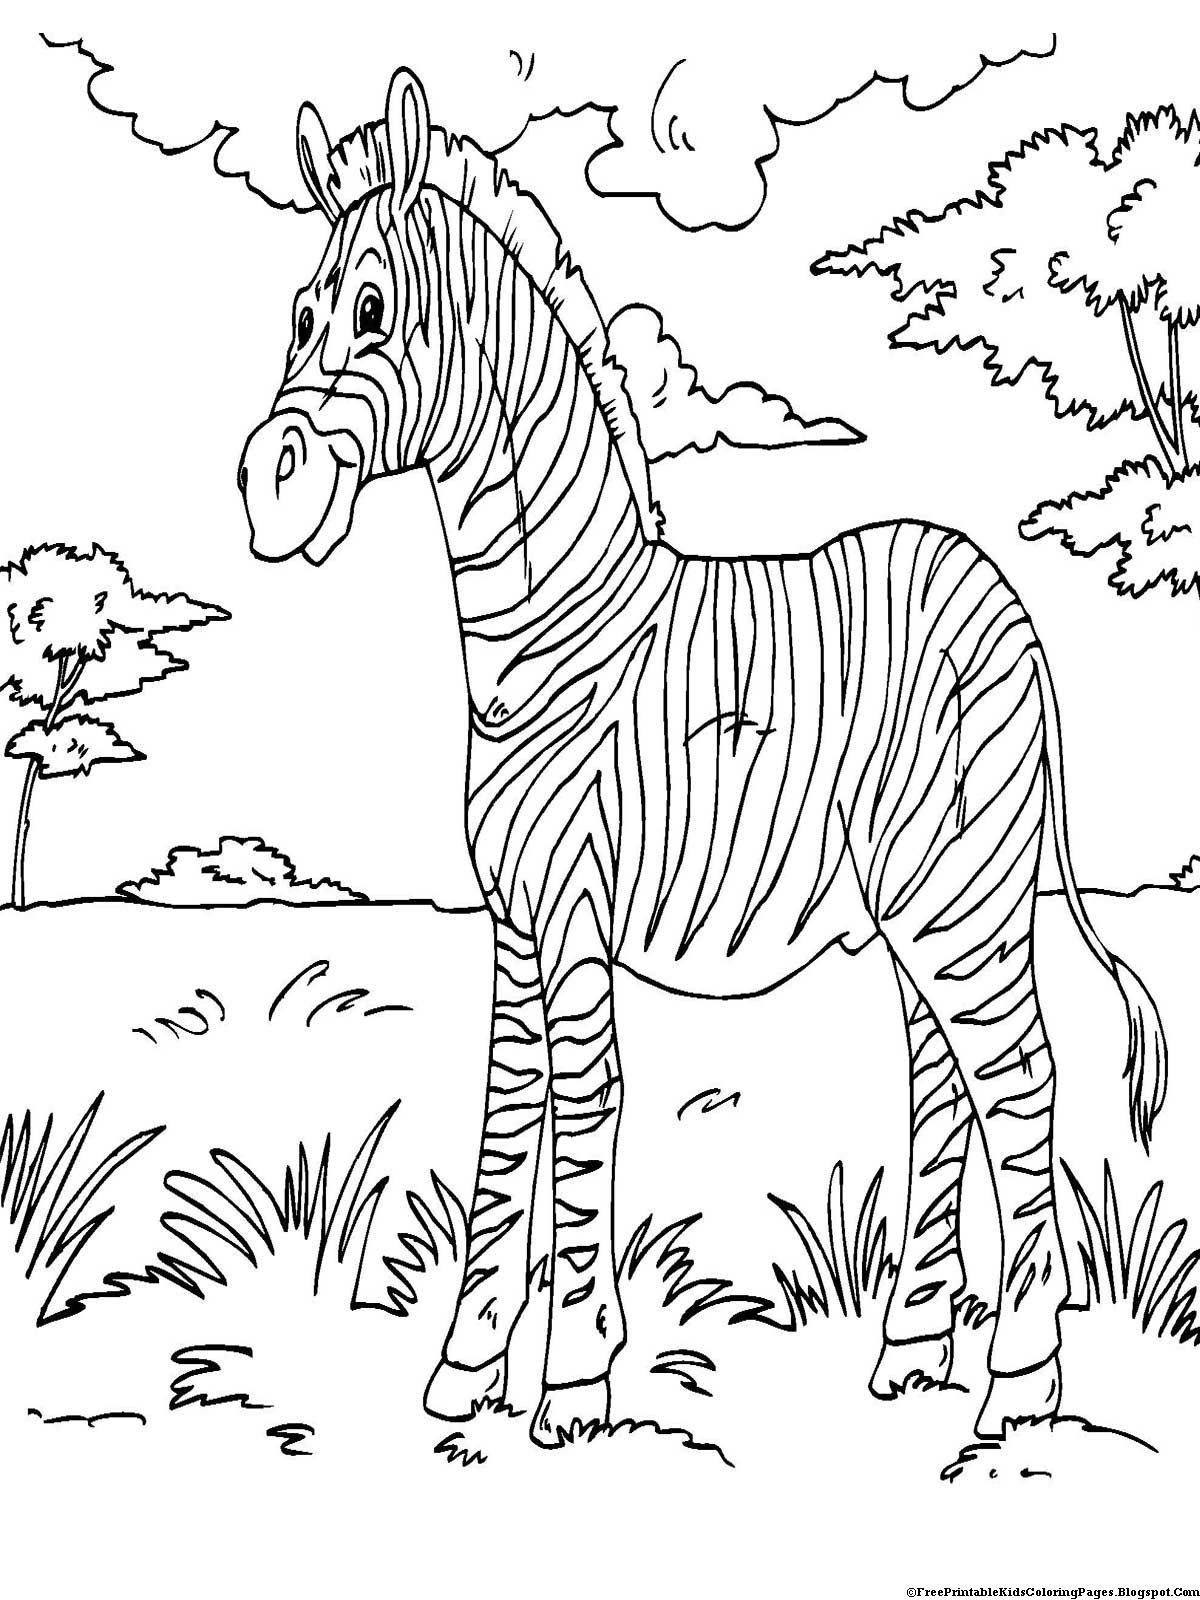 zebra coloring pages free - photo #45